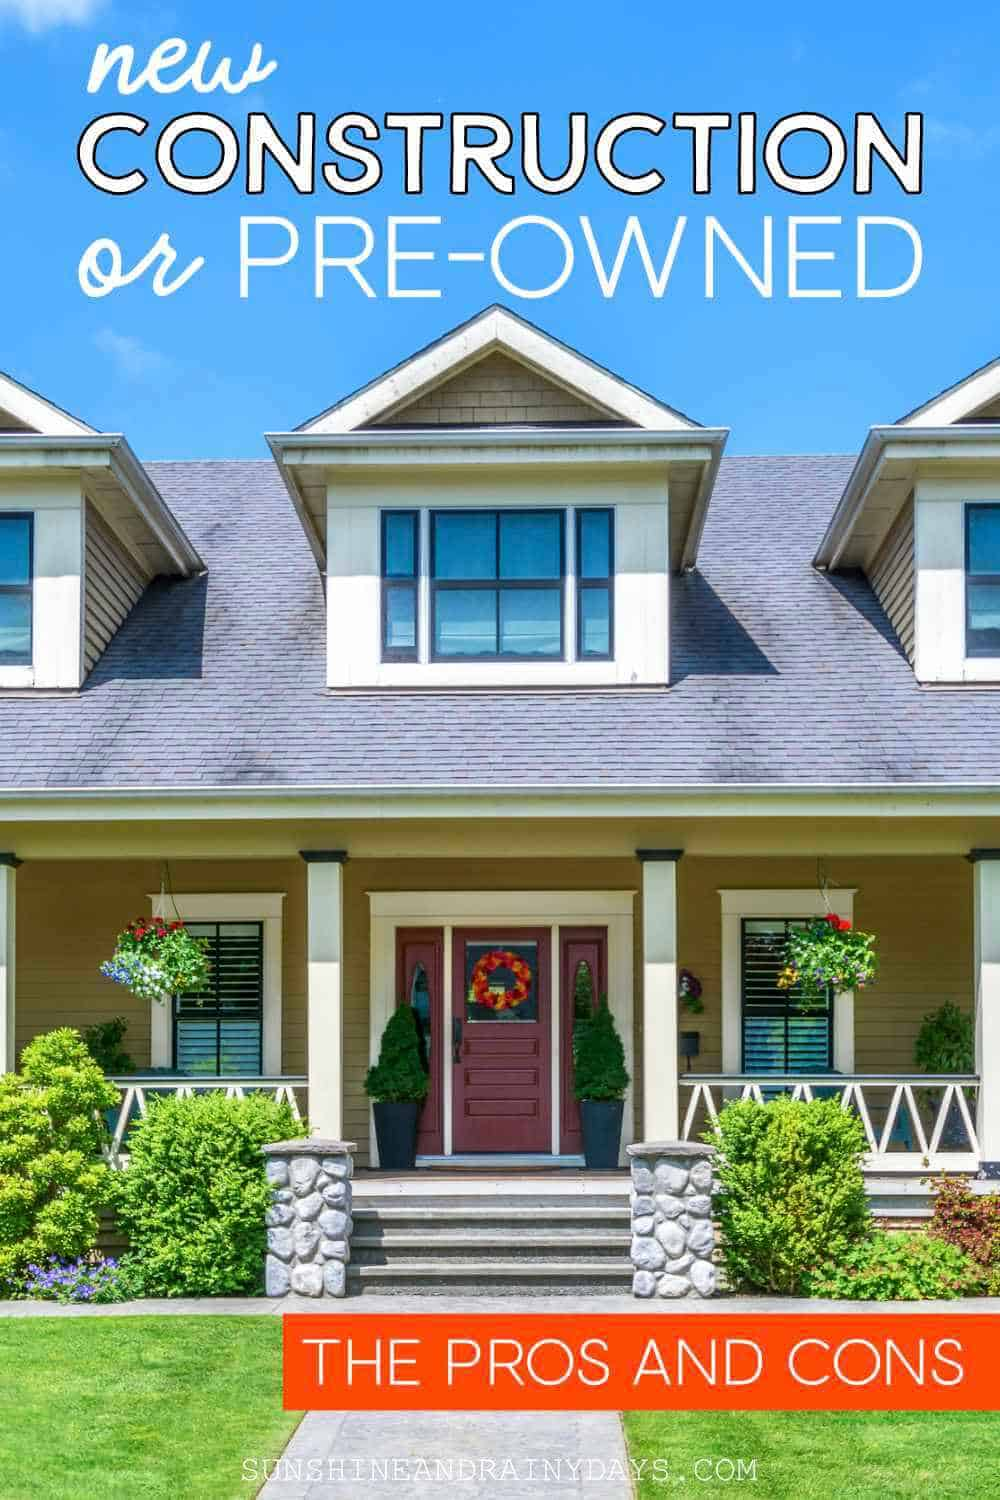 New construction or pre-owned - the pros and cons.